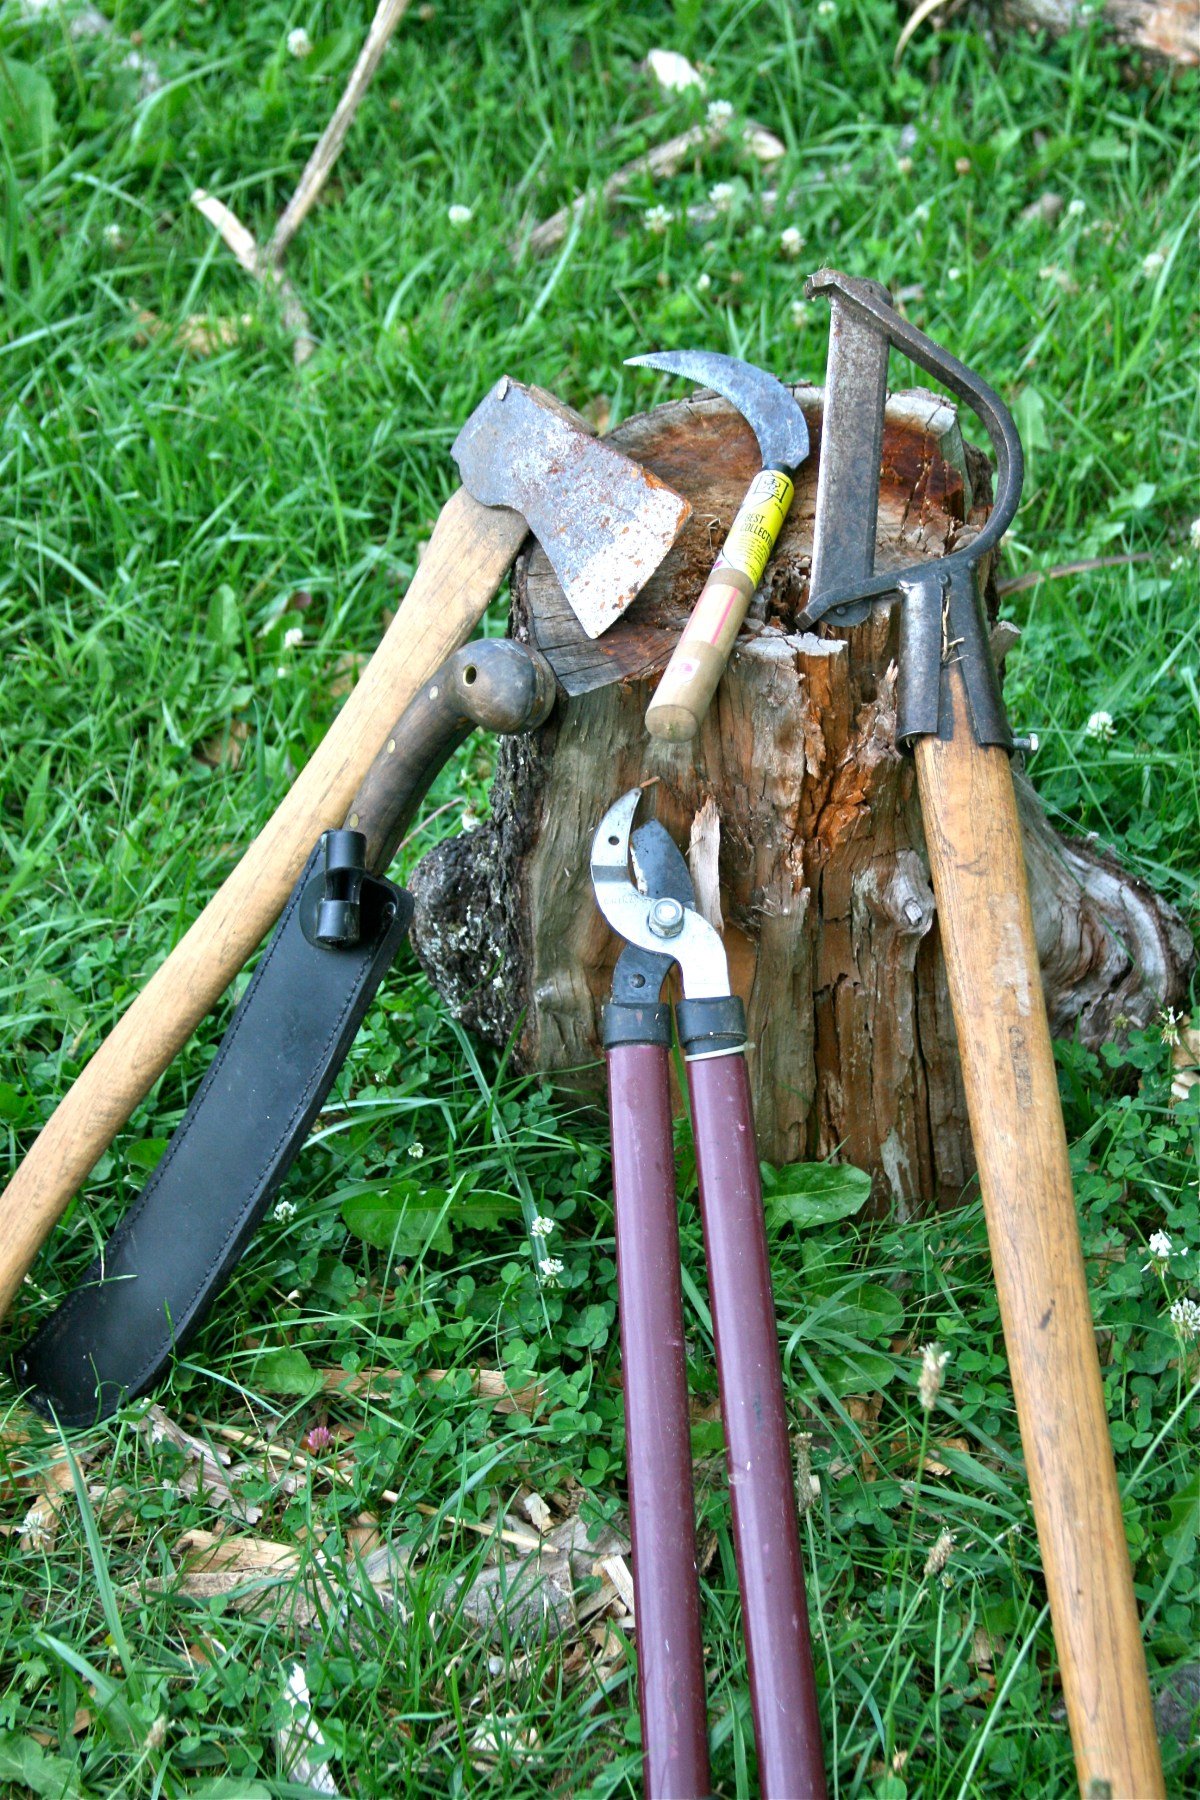 From left to right- felling ax, machete, pruners, rice knife, brush clearing ax tools for chop and drop